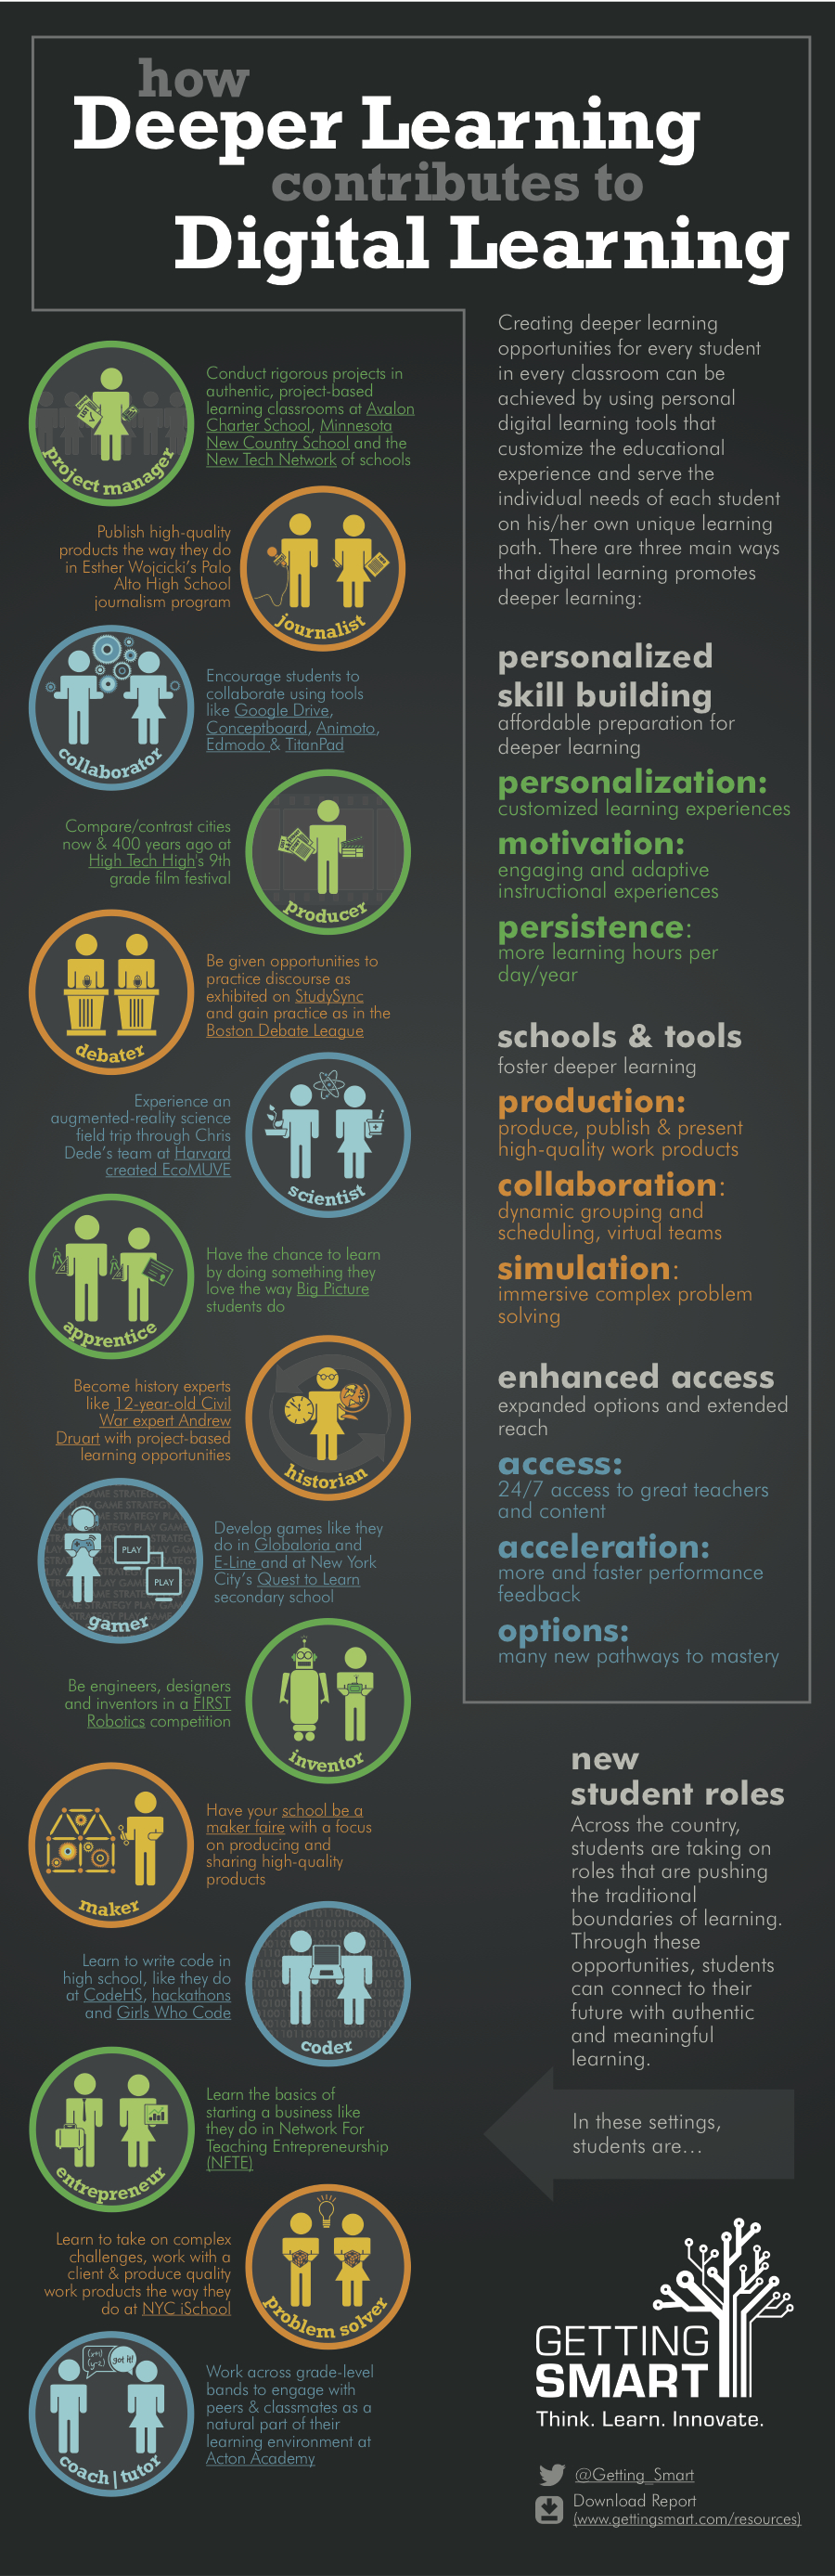 Digital-Learning-Deeper-Learning-Infographic